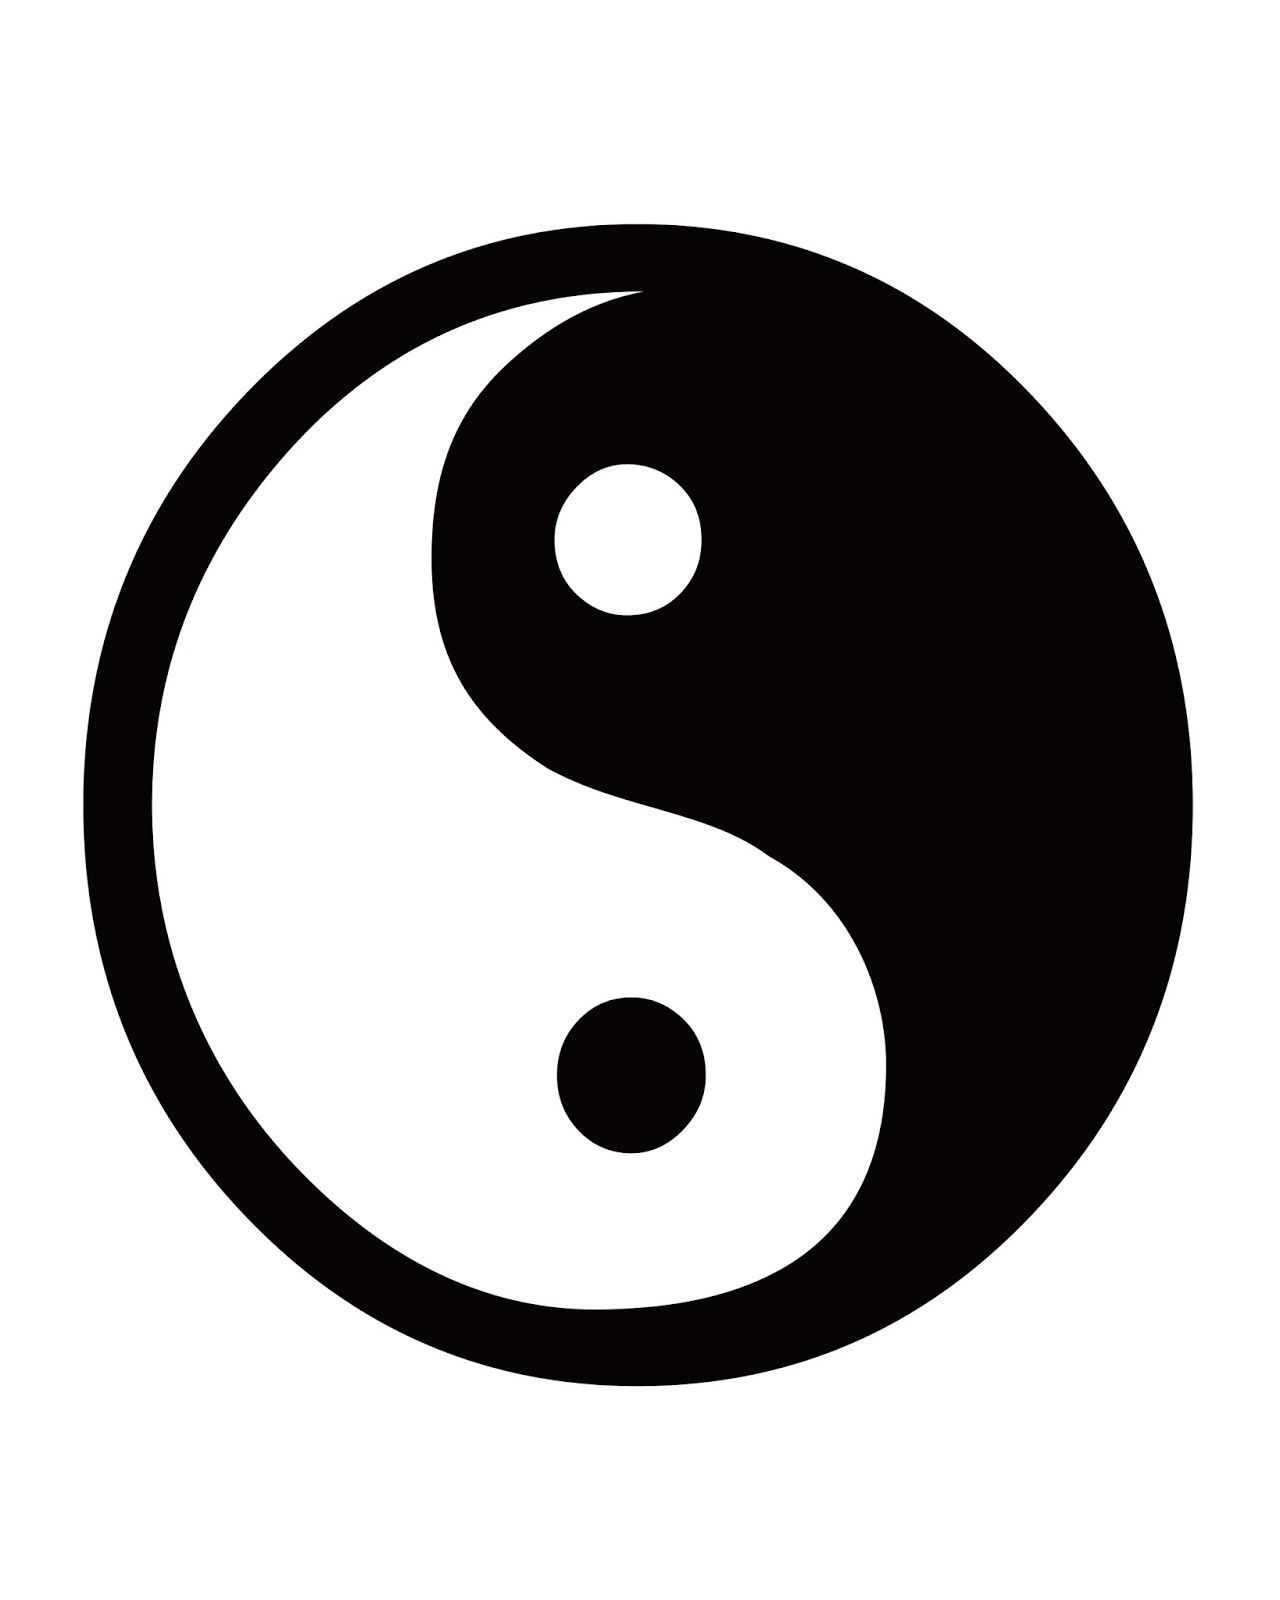 online store 1f32c c7e21 Free Printable 8x10 Black and White Artwork  Yin Yang Sign